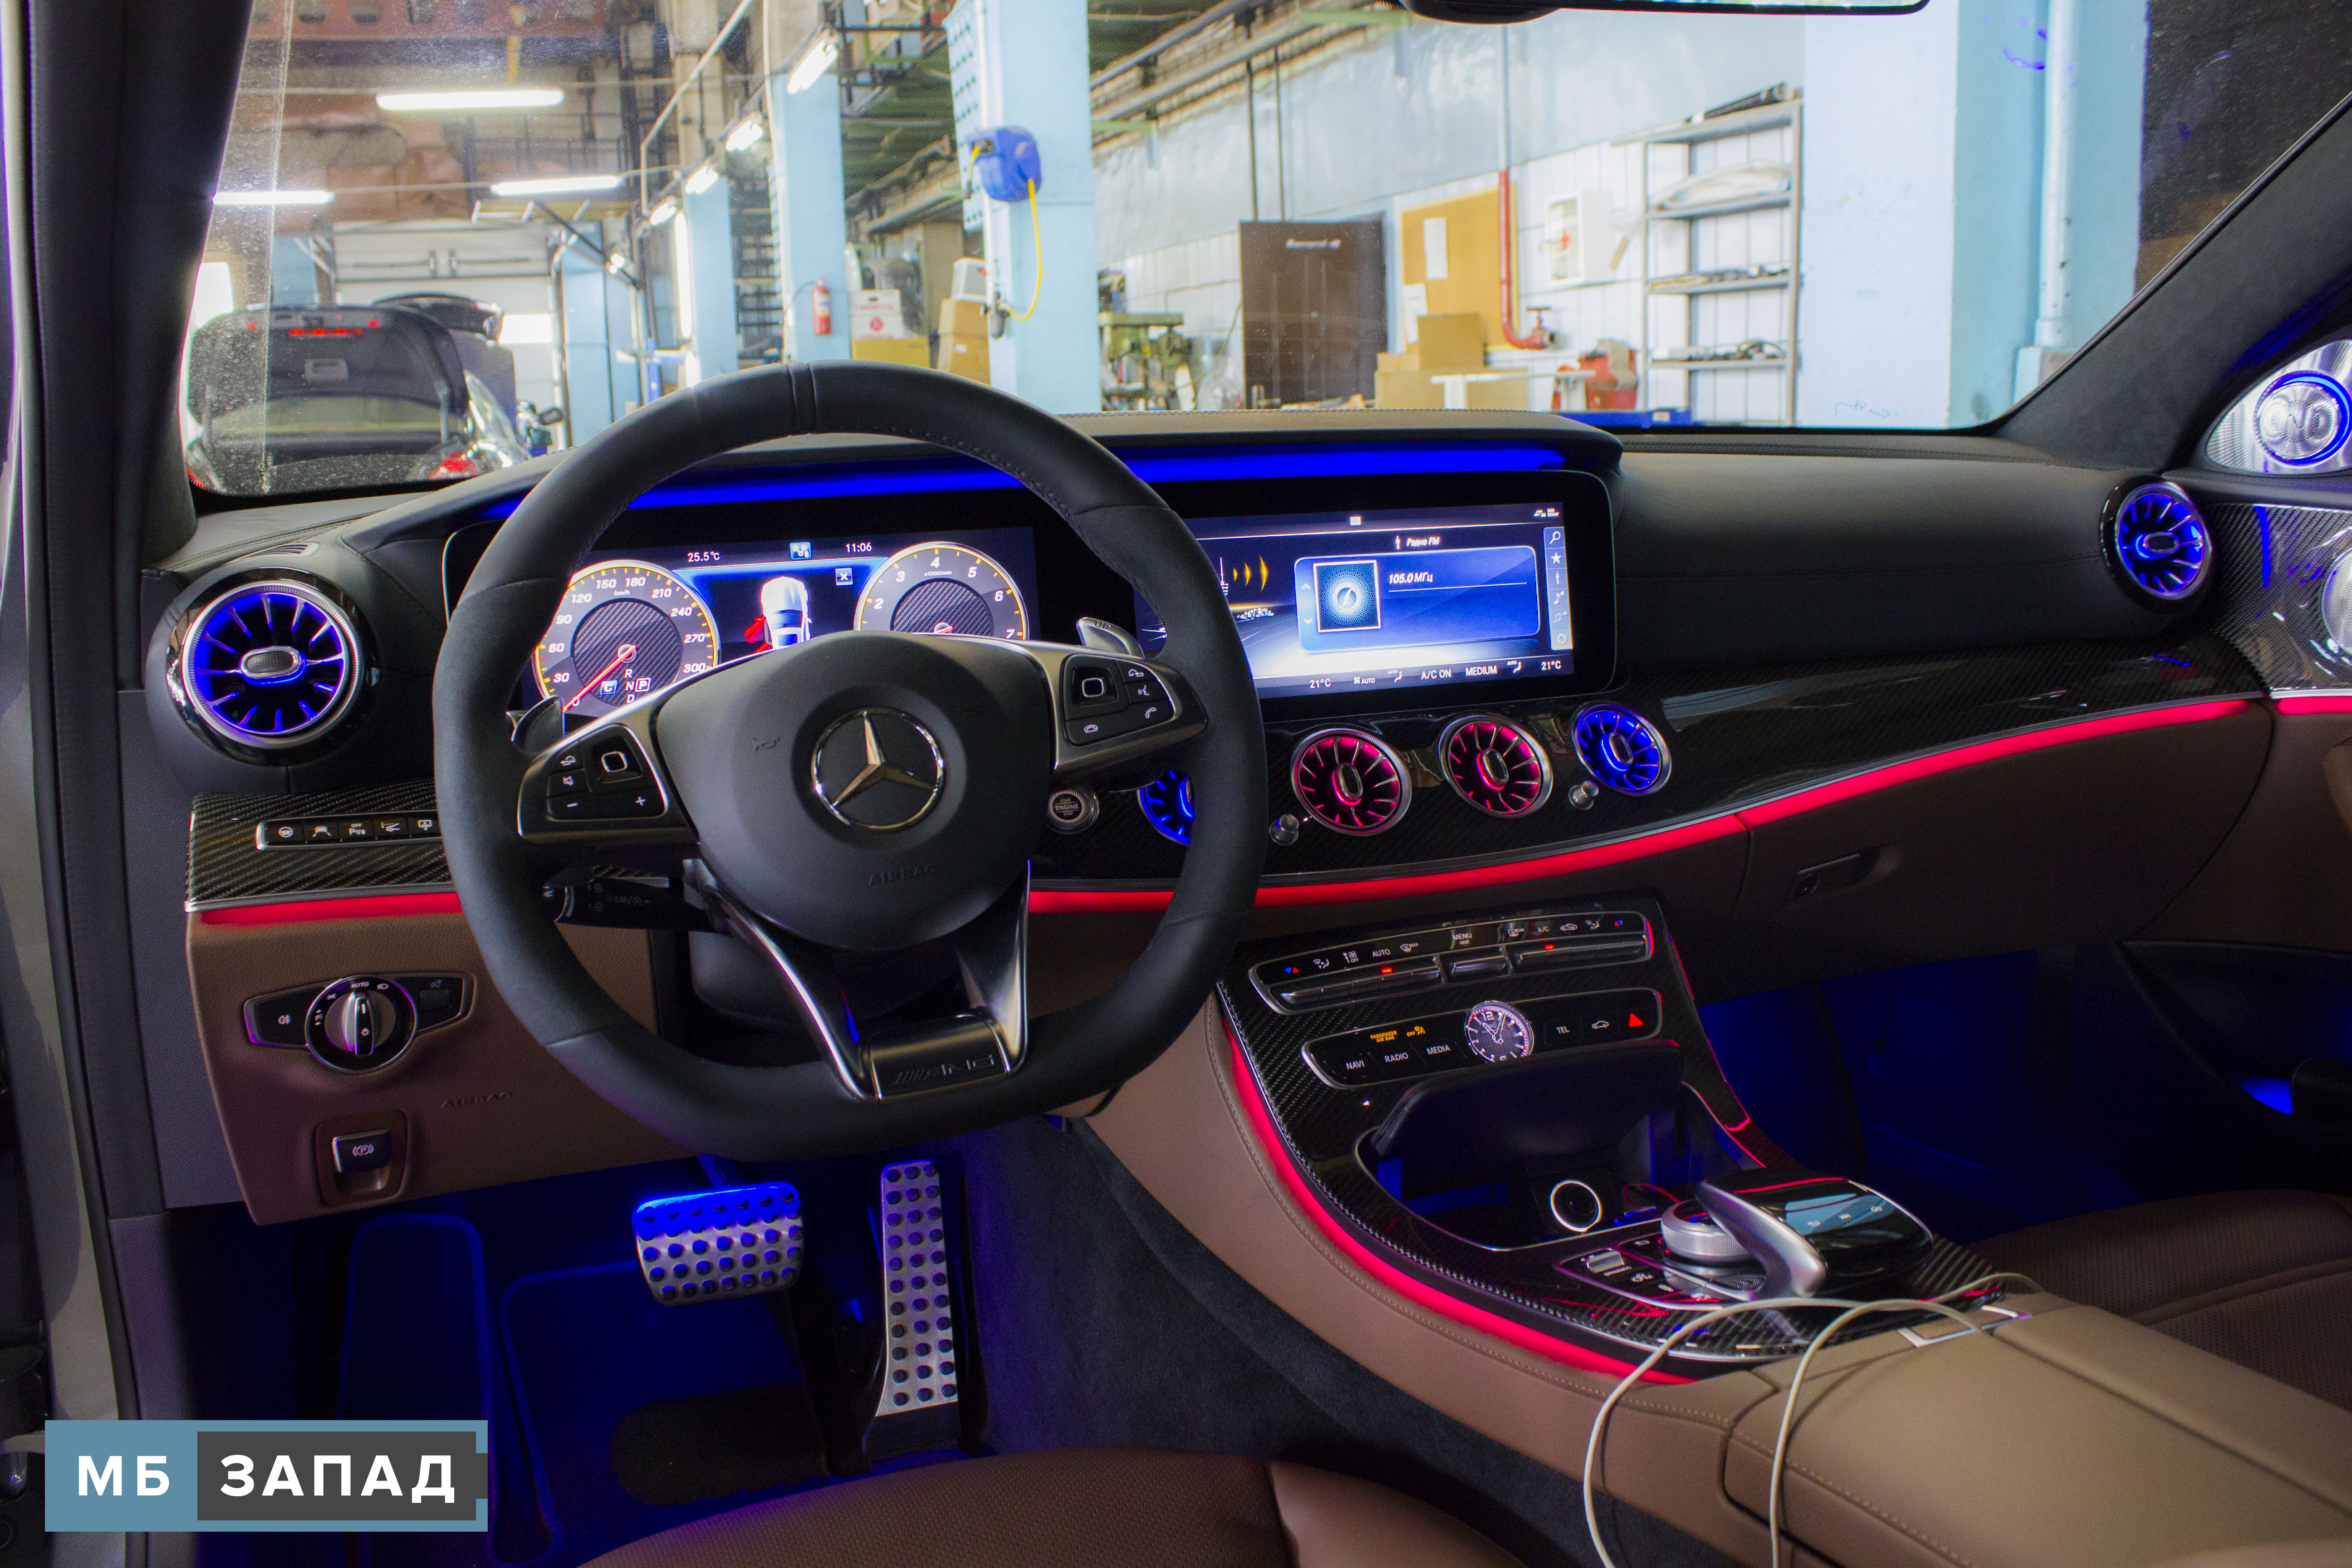 Mercedes CLS-Class (C257) interior restyling